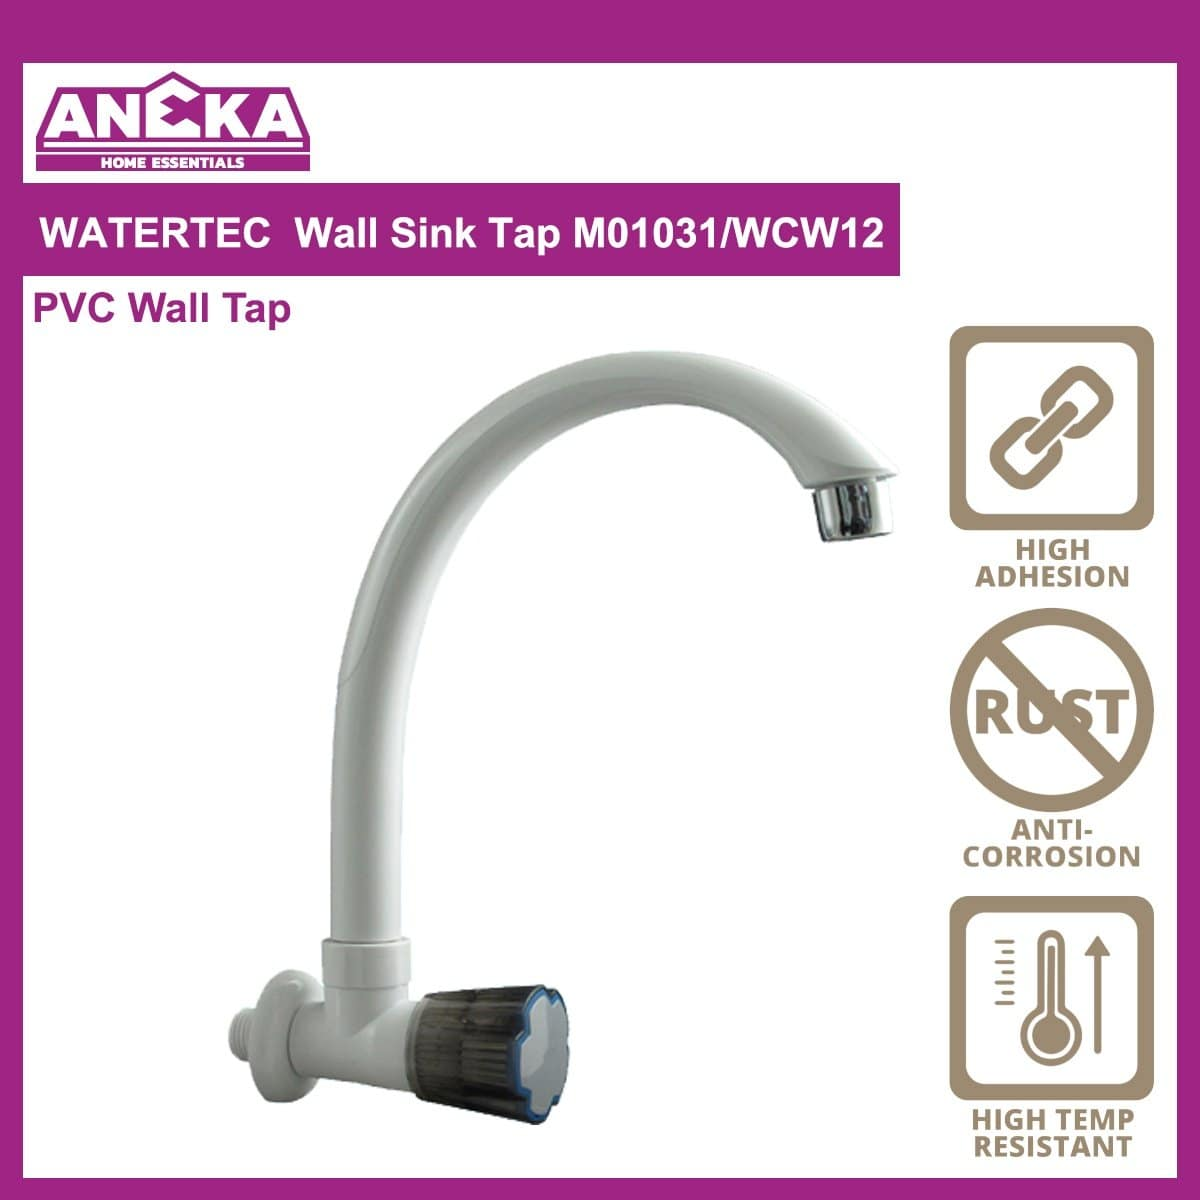 WATERTEC Wall Sink Tap WCW12/ M01031